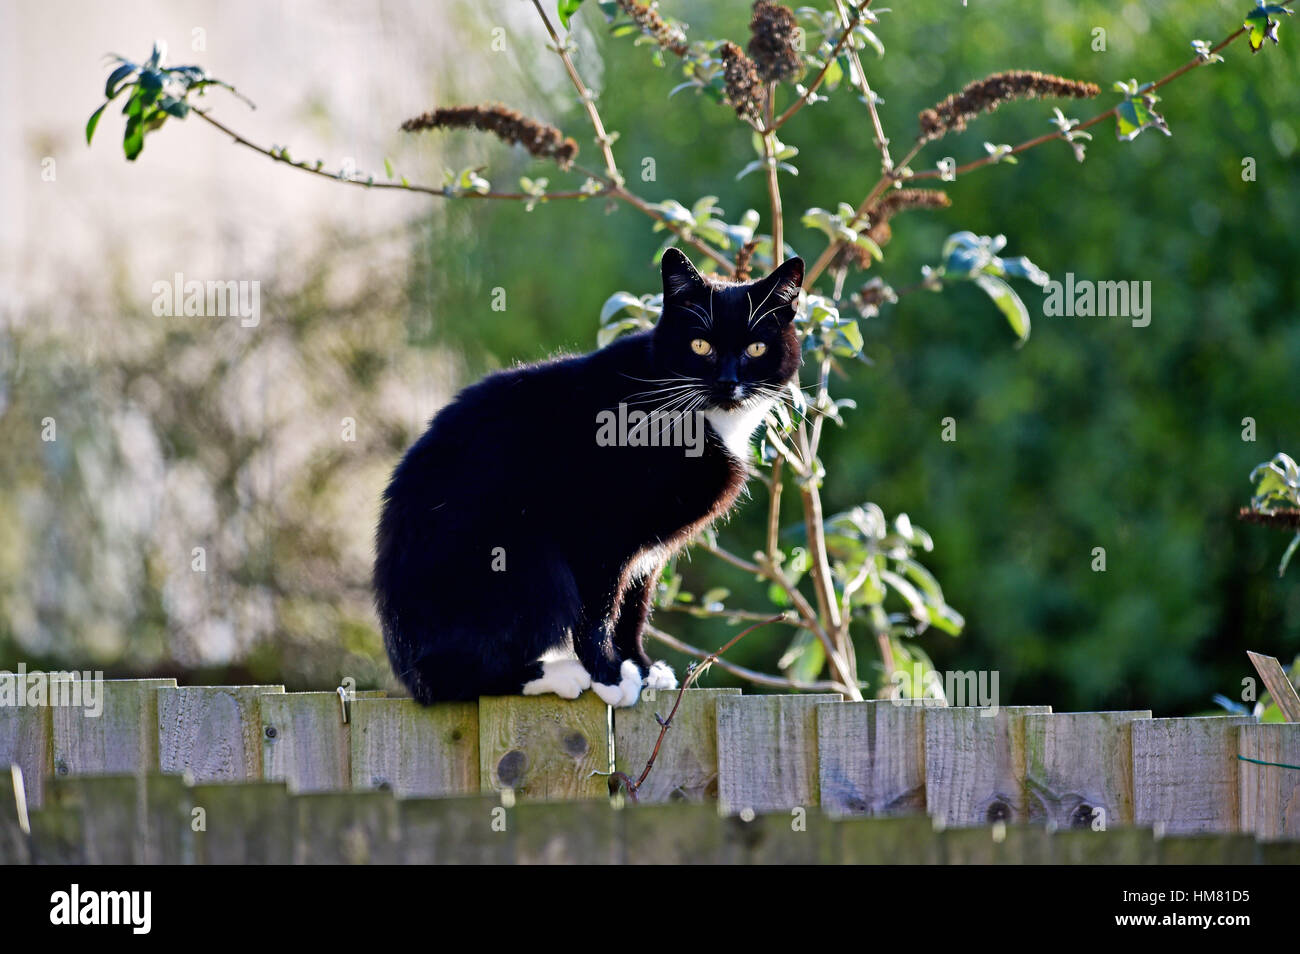 Black Cat With White Chest And Piercing Eyes Sits On A Garden